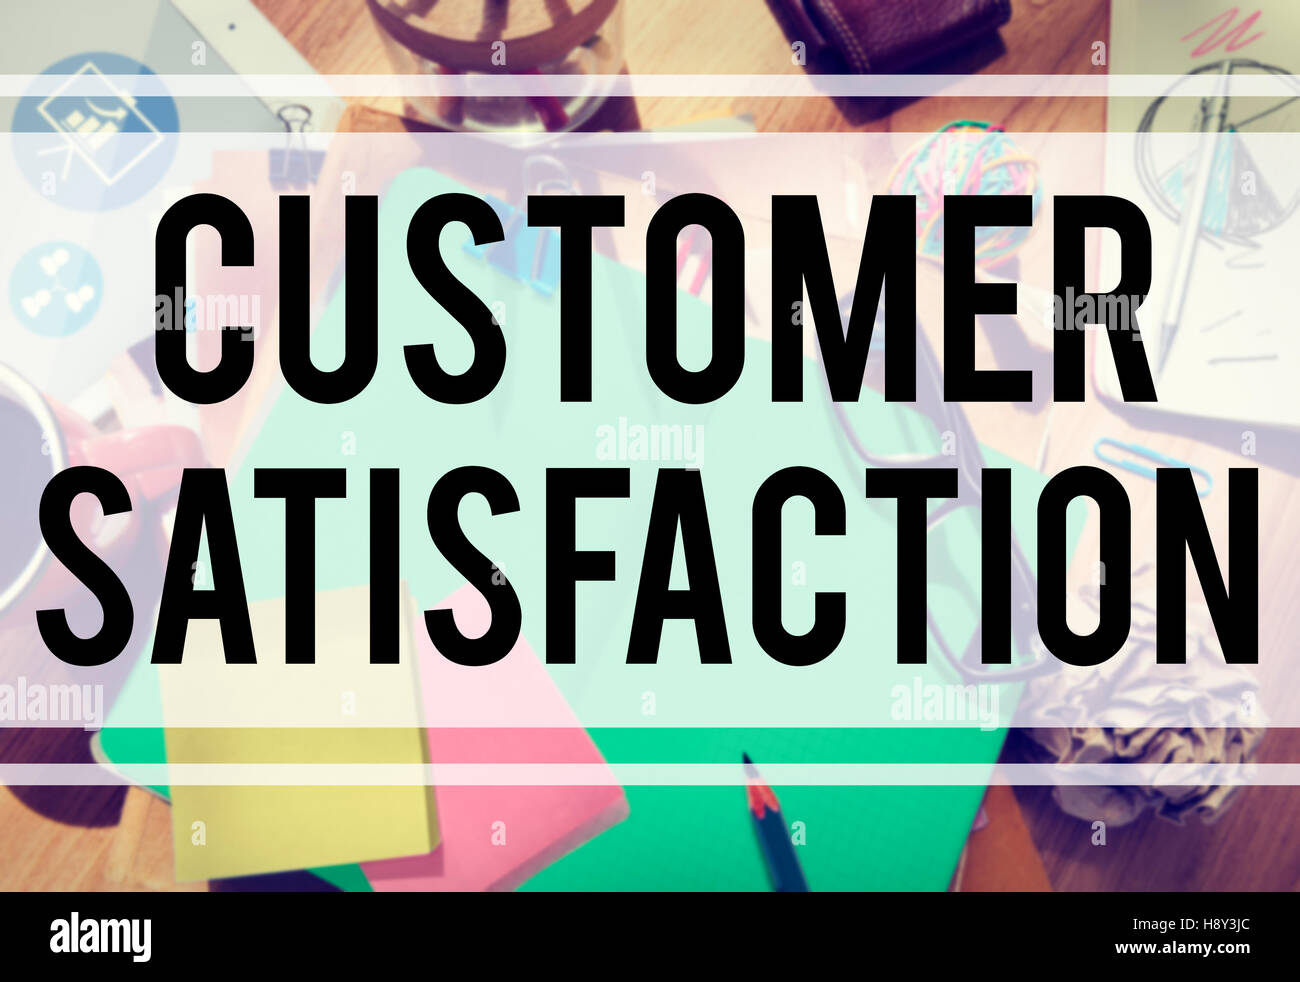 Customer Satisfaction Service Support Assistance Concept - Stock Image